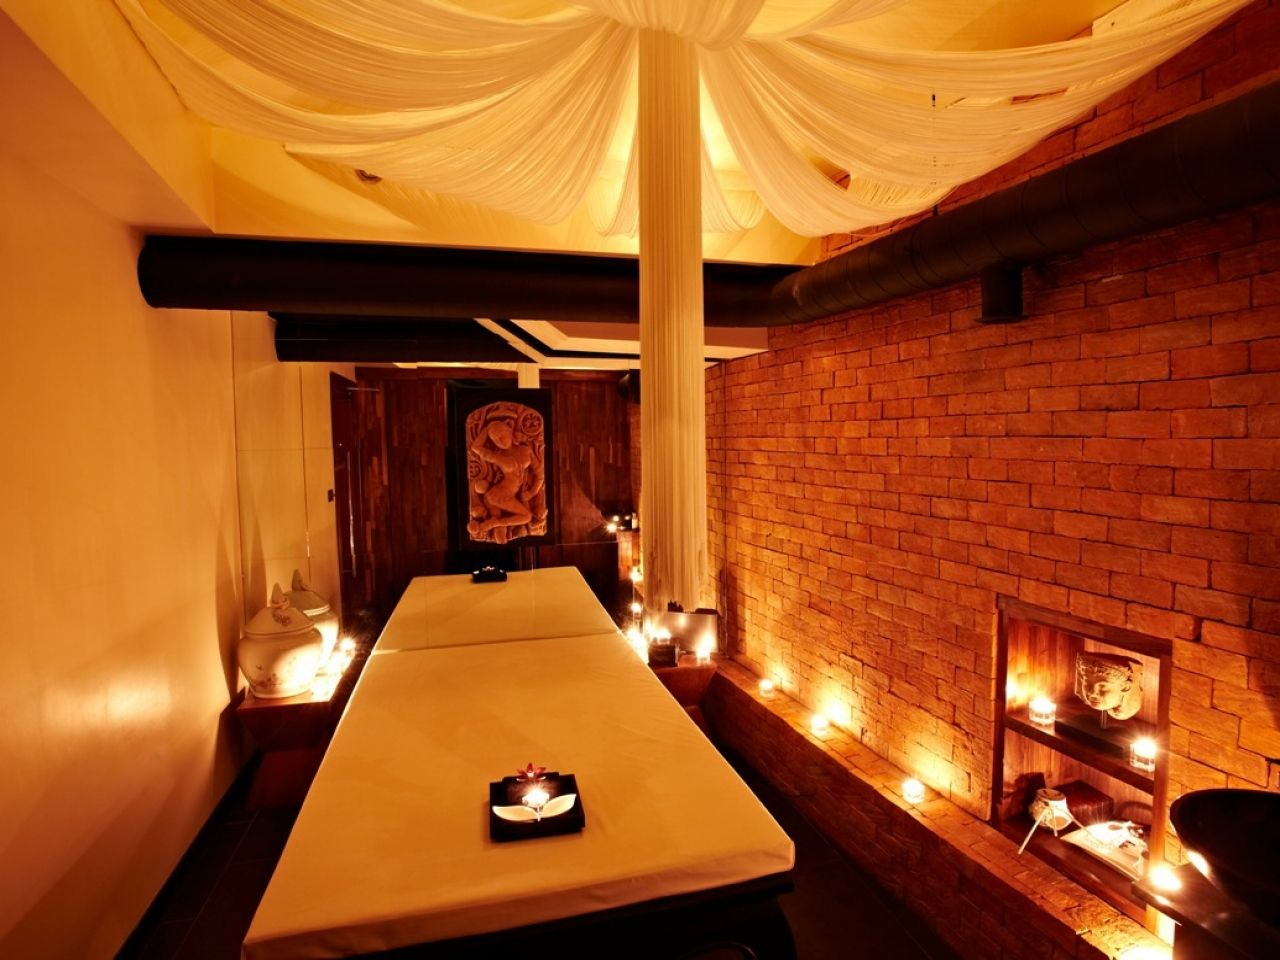 Massage Therapy Room Design Ideas Part - 36: Therapy Room Decor Ideas Waterfall Massage Room Decor Art